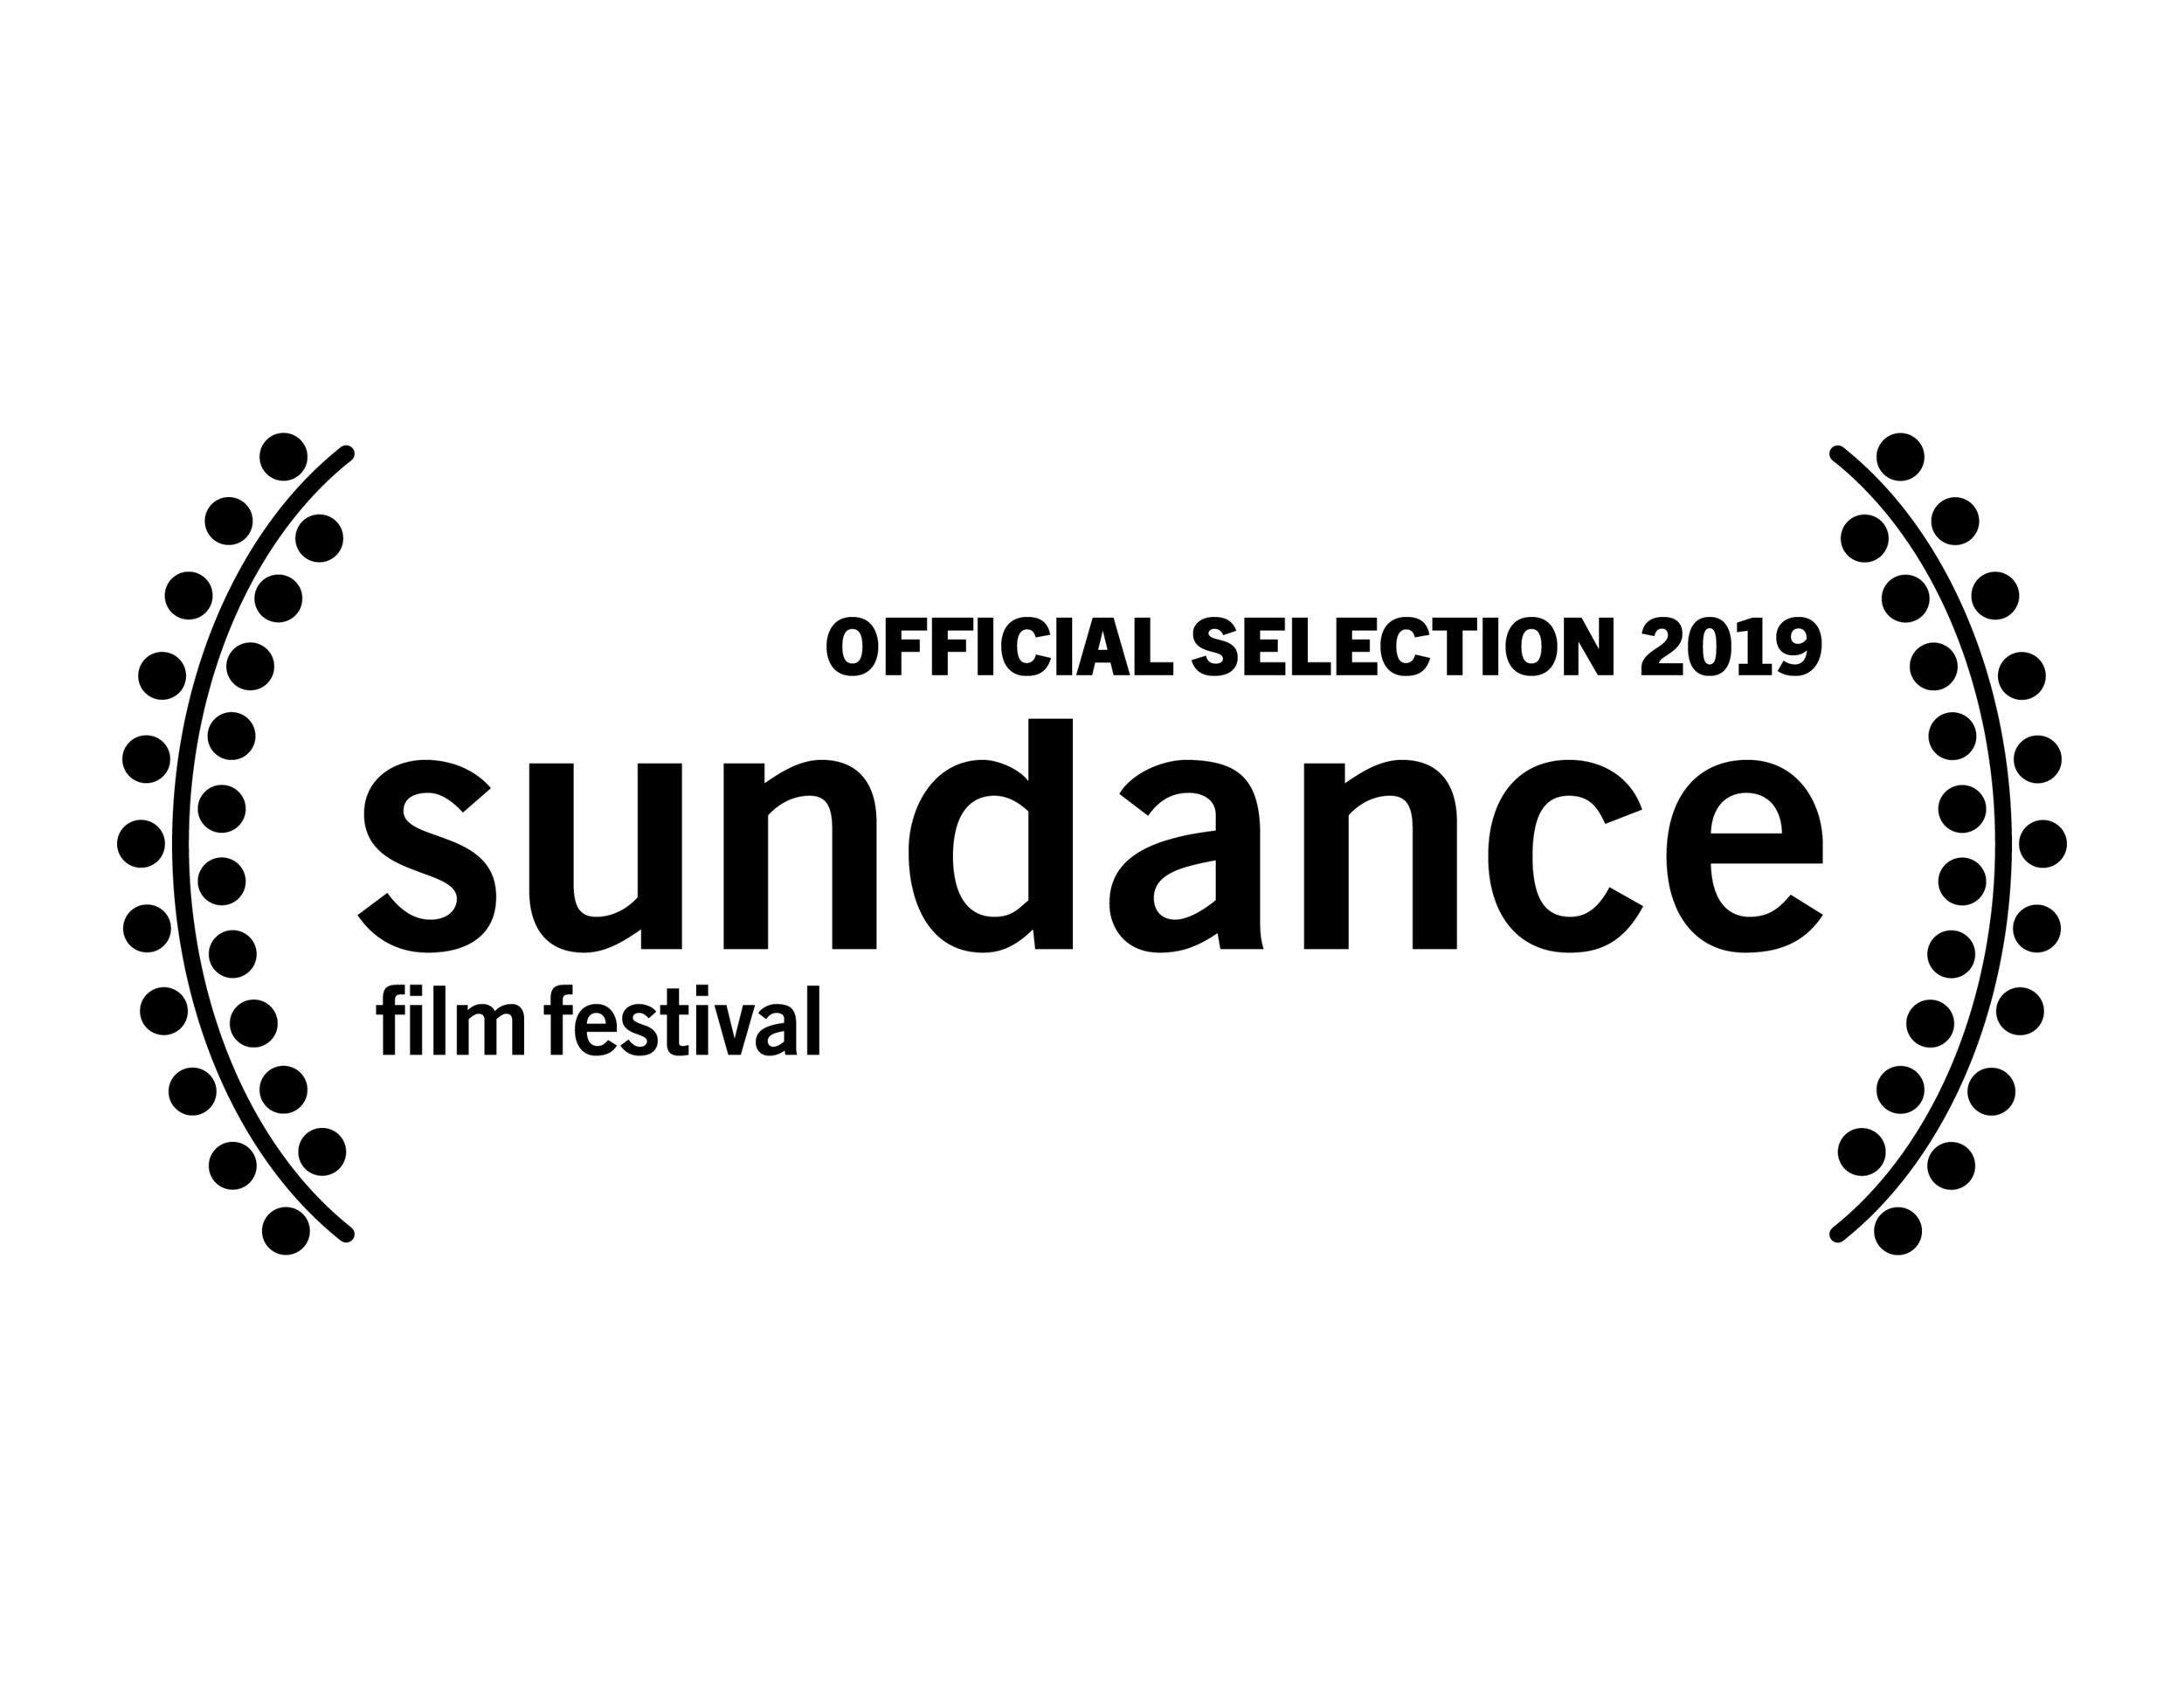 """Ashe '68 VR film to premiere at 2019 Sundance Festival, in New Frontiers section. - """"For over a decade, New Frontier has pushed the boundaries of the possible, illuminating the potential of technology and storytelling. These independent cross-media artists create new realities for, and with, their work — and the results inspire.""""-festival founder Robert Redford"""